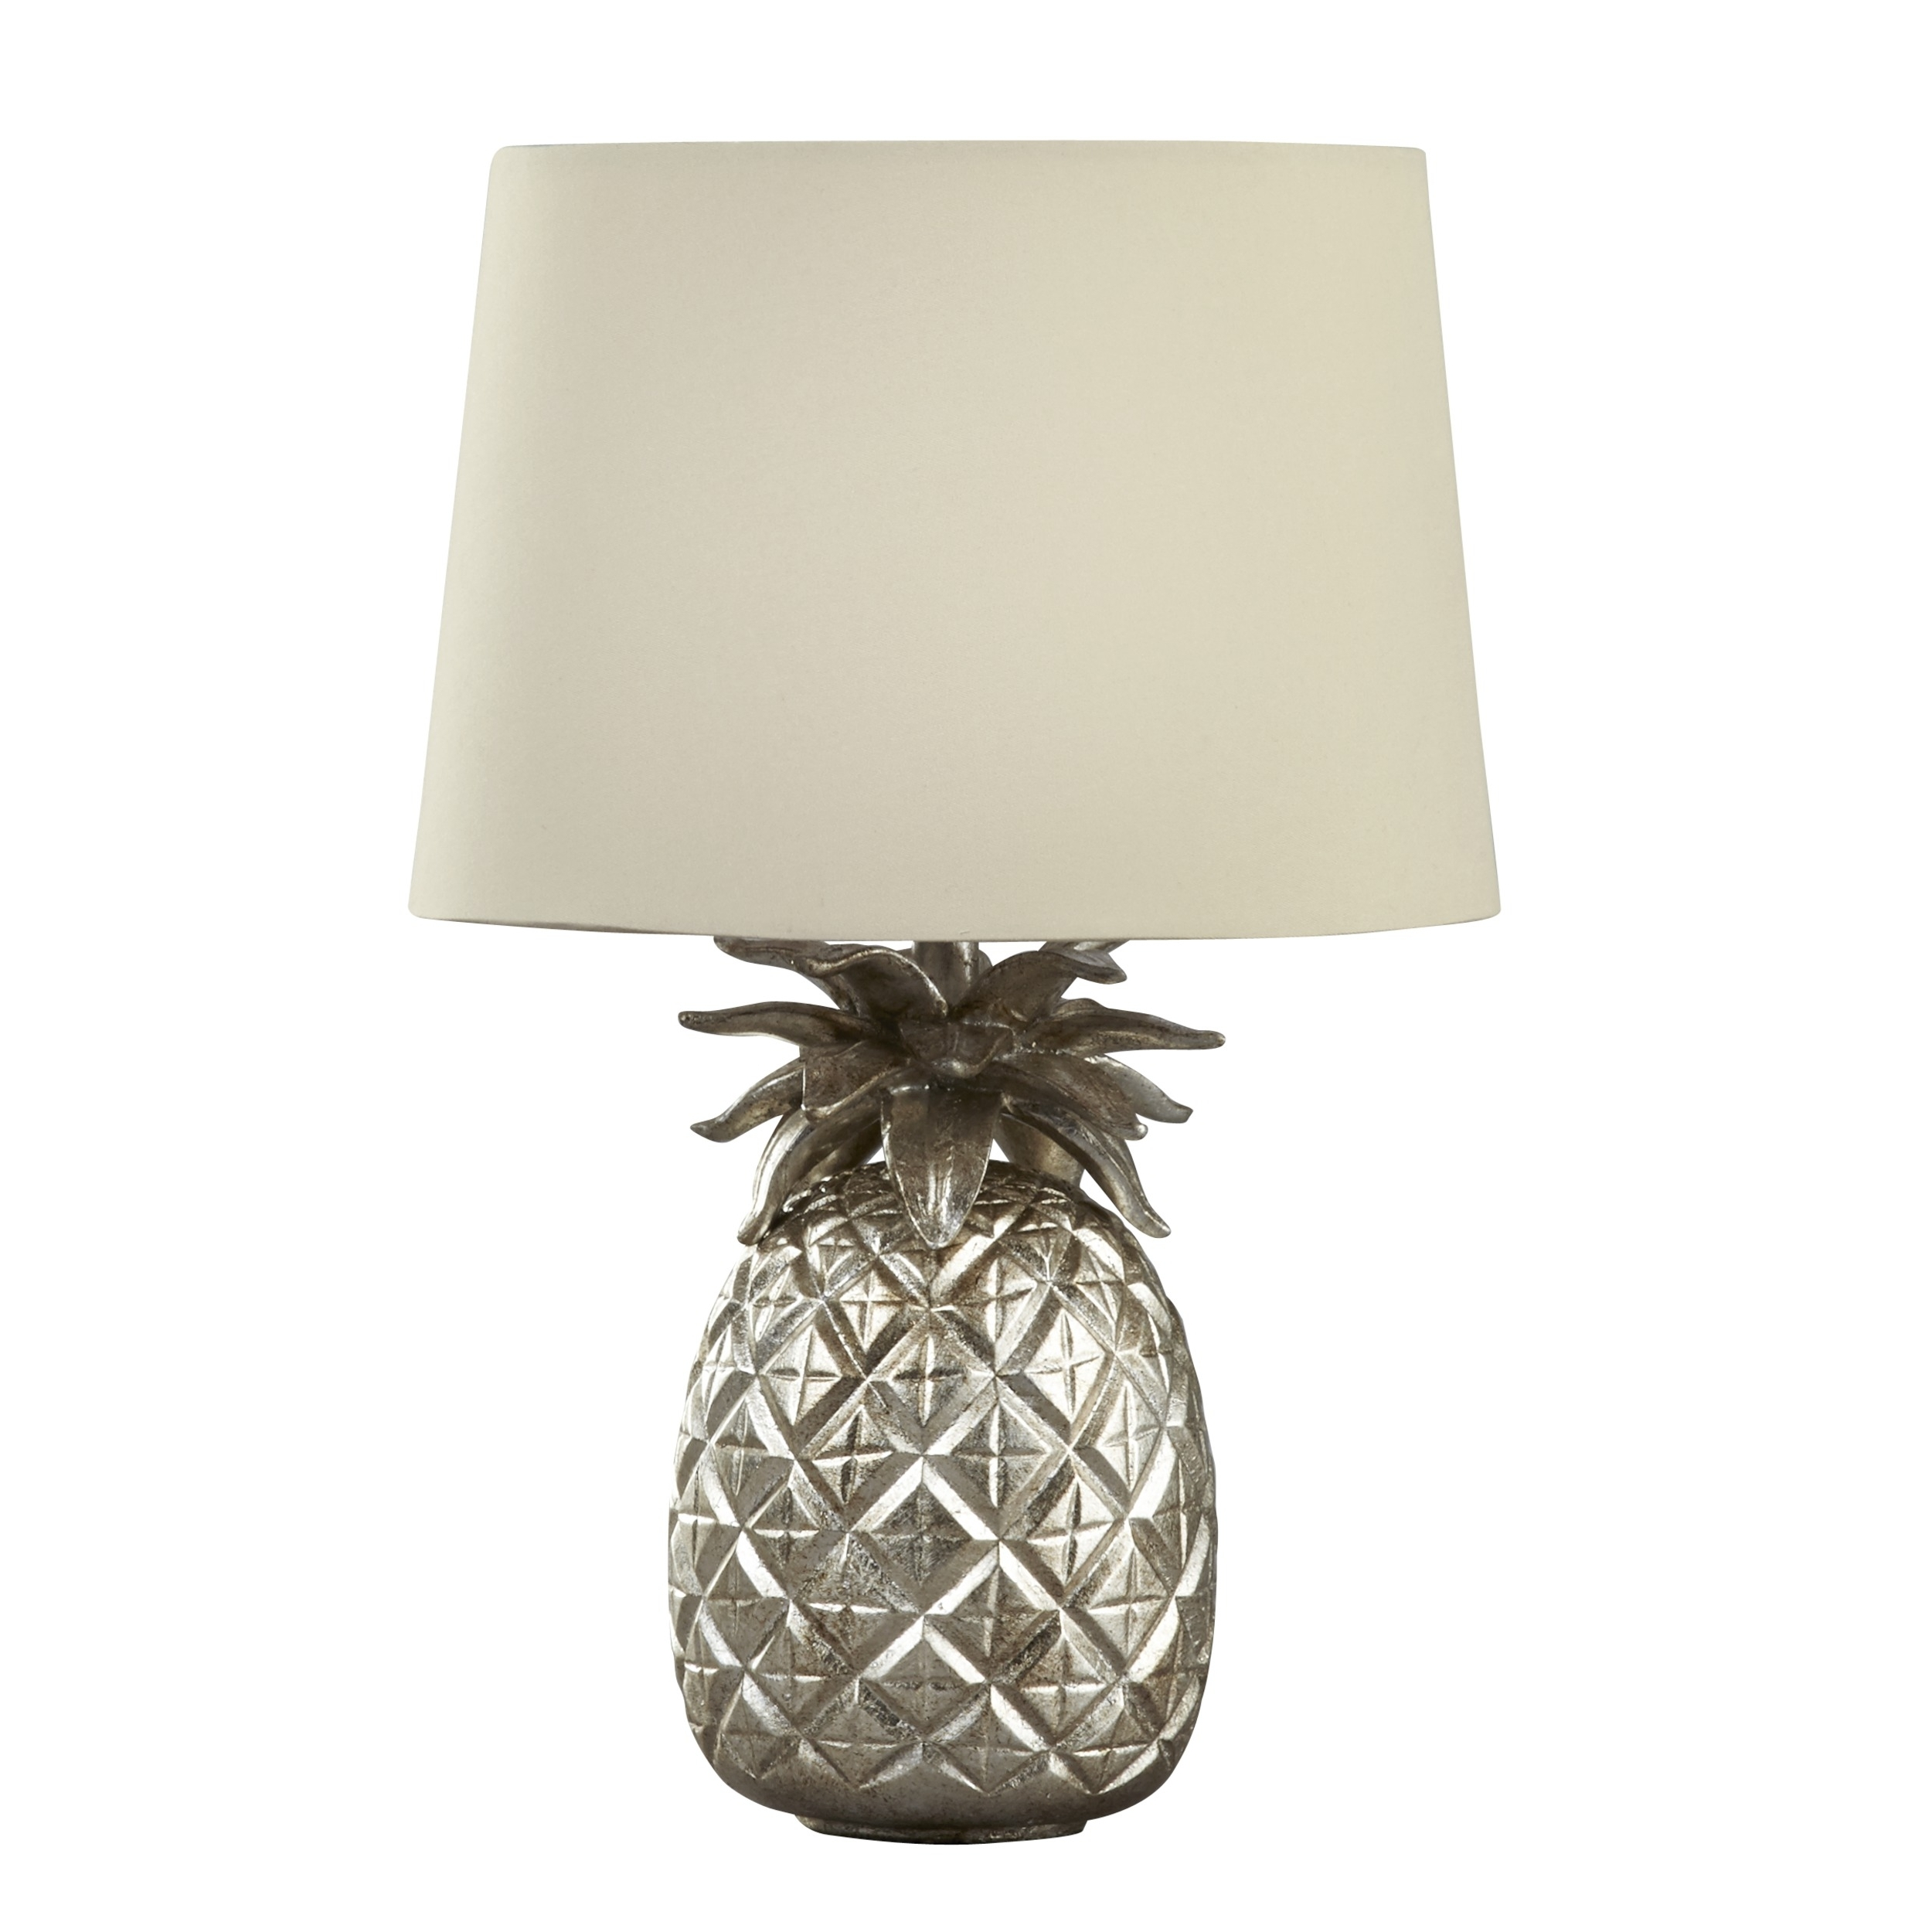 Pineapple Outdoor Light – Outdoor Lighting Ideas Pertaining To Newest Outdoor Pineapple Lanterns (View 17 of 20)